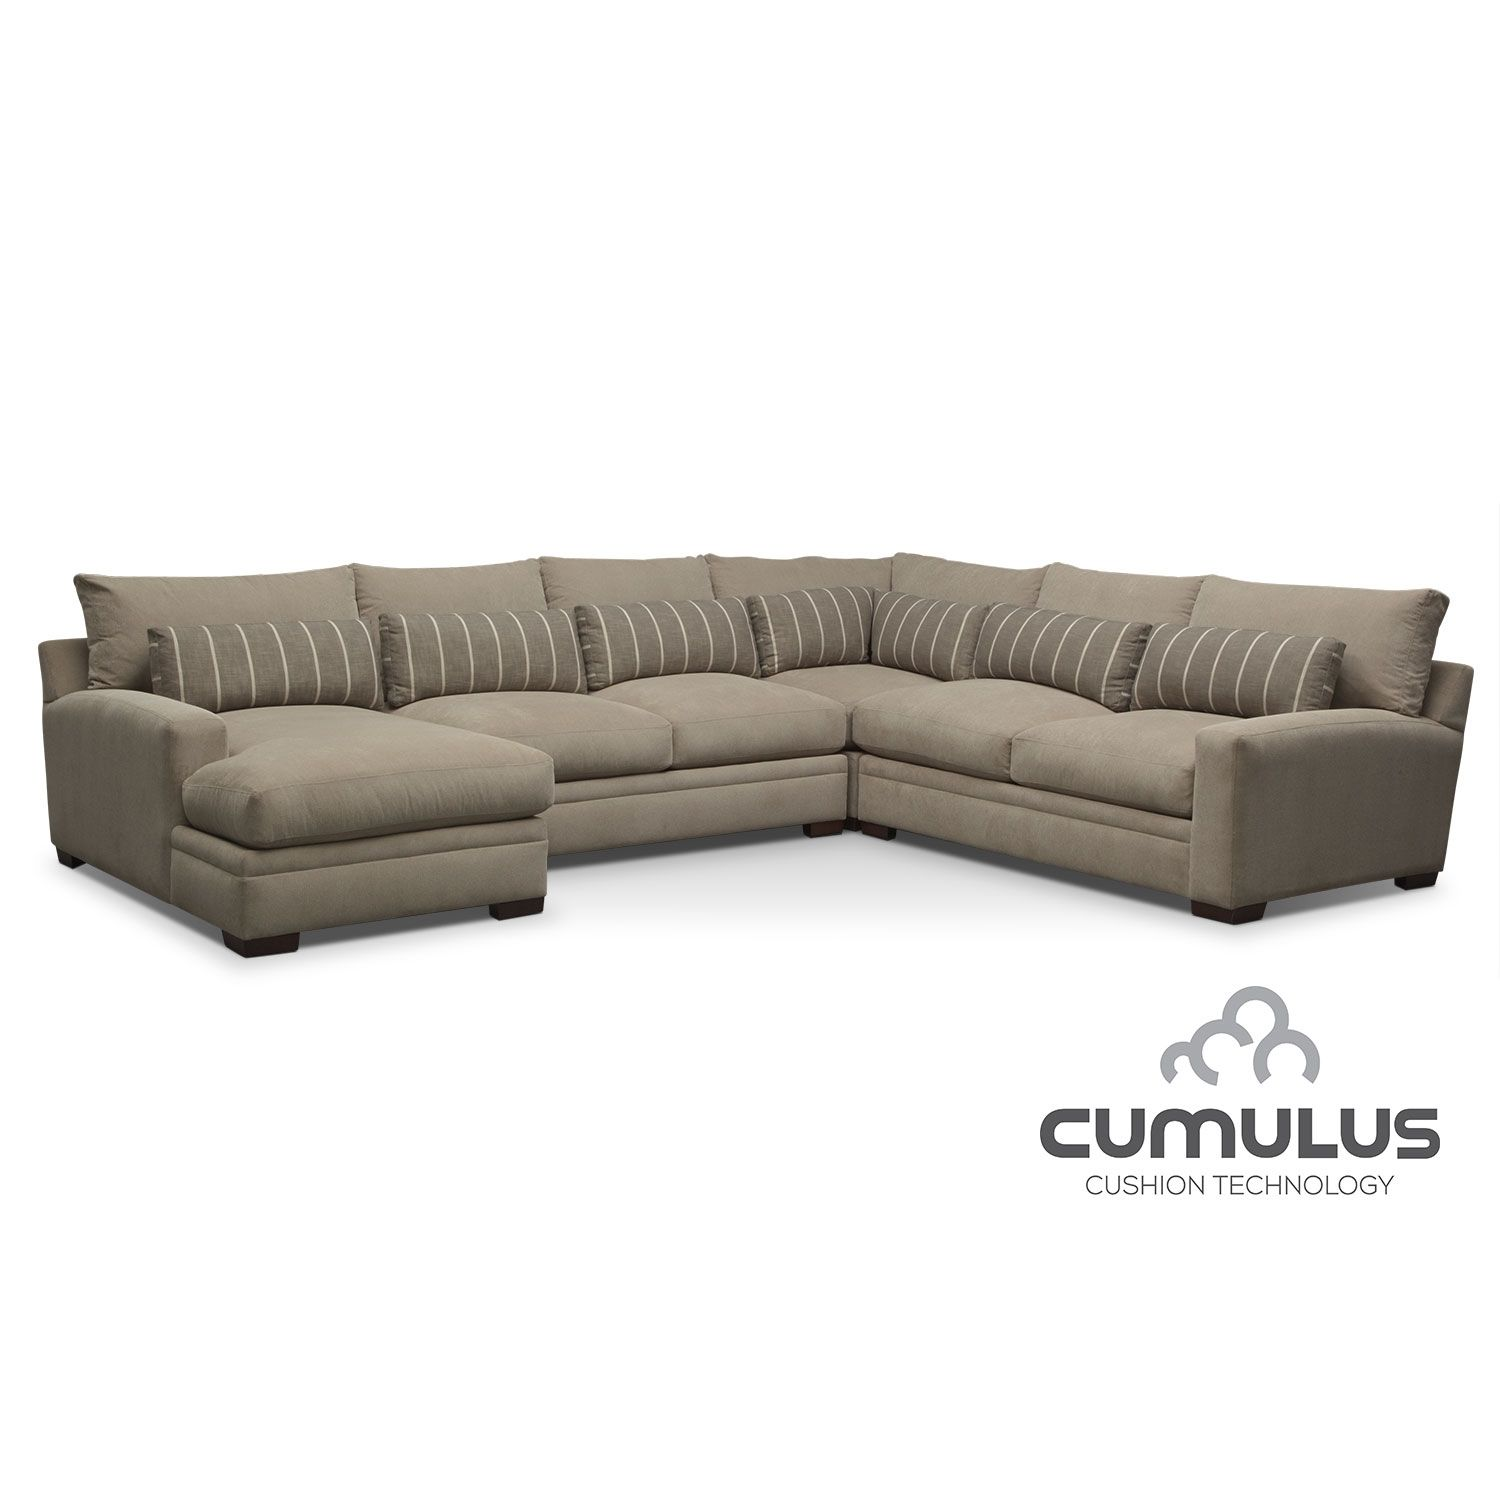 Wonderful Shop For The Most Comfortable Sectional Couches Right Here At Value City  Furniture. Youu0027ll Find Some Of The Largest And Coziest Couches At The Best  Prices ... Pictures Gallery